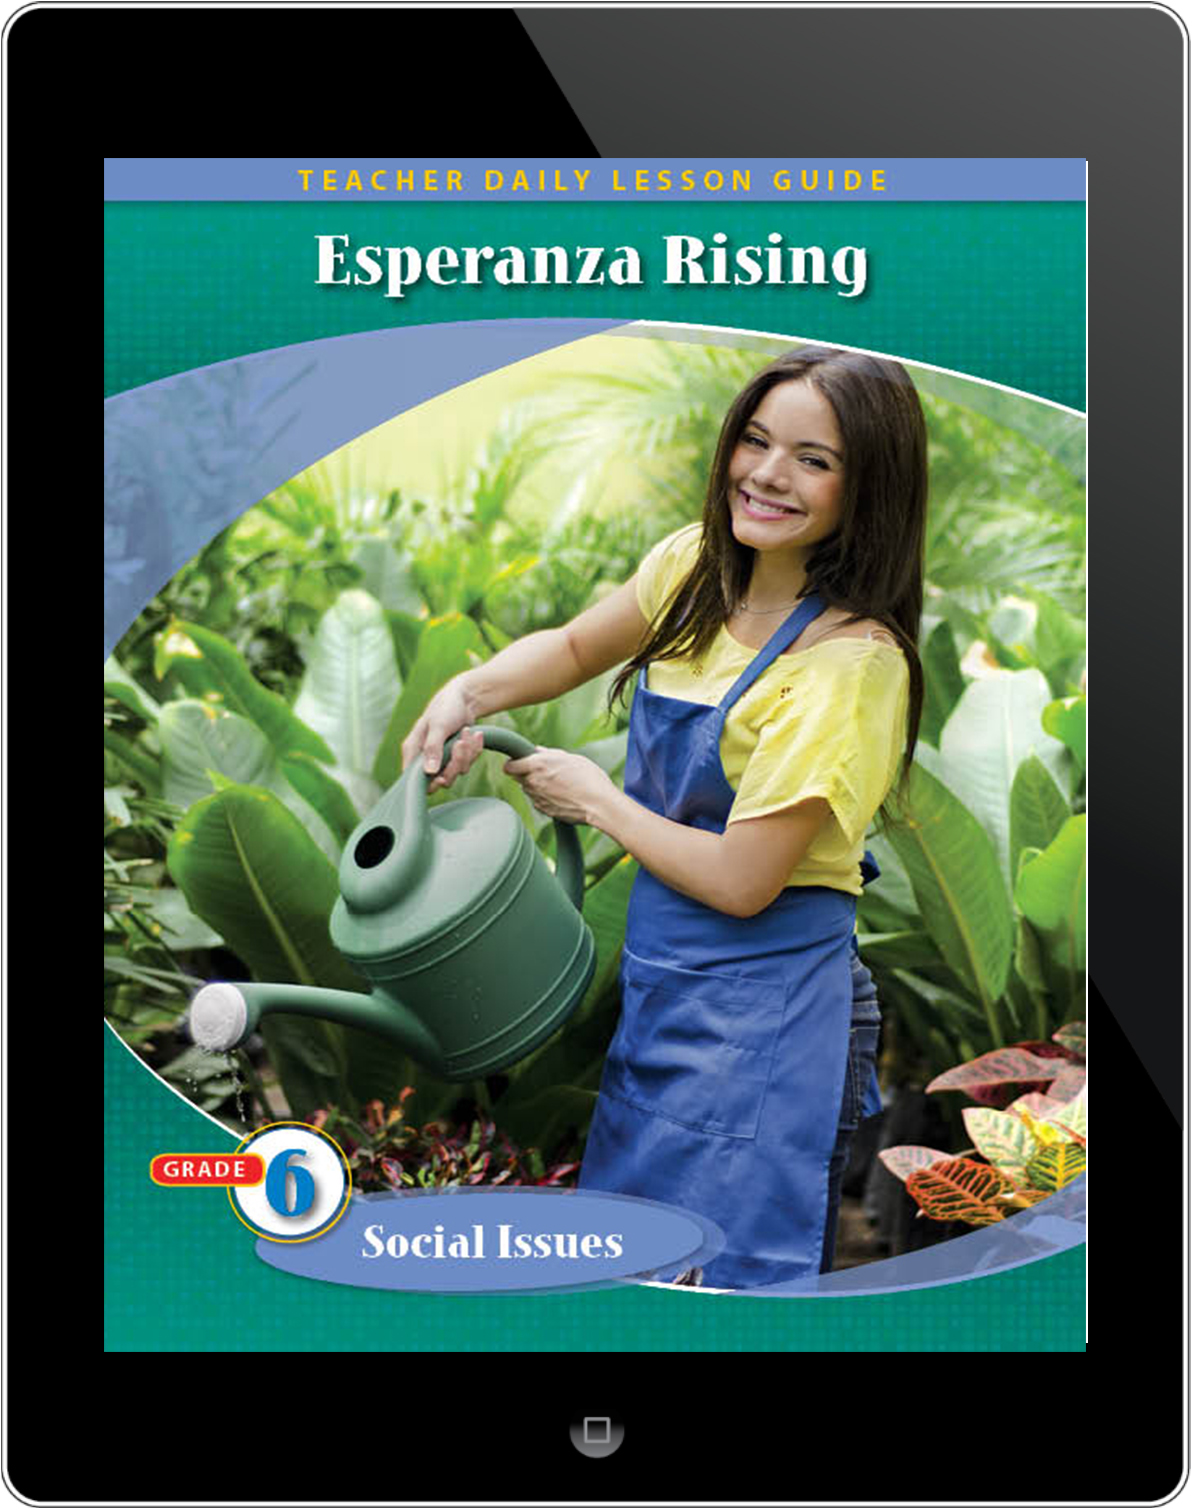 Pathways2.0 Grade 6 Social Issues Unit: Esperanza Rising Daily Lesson Guide 5 Year License